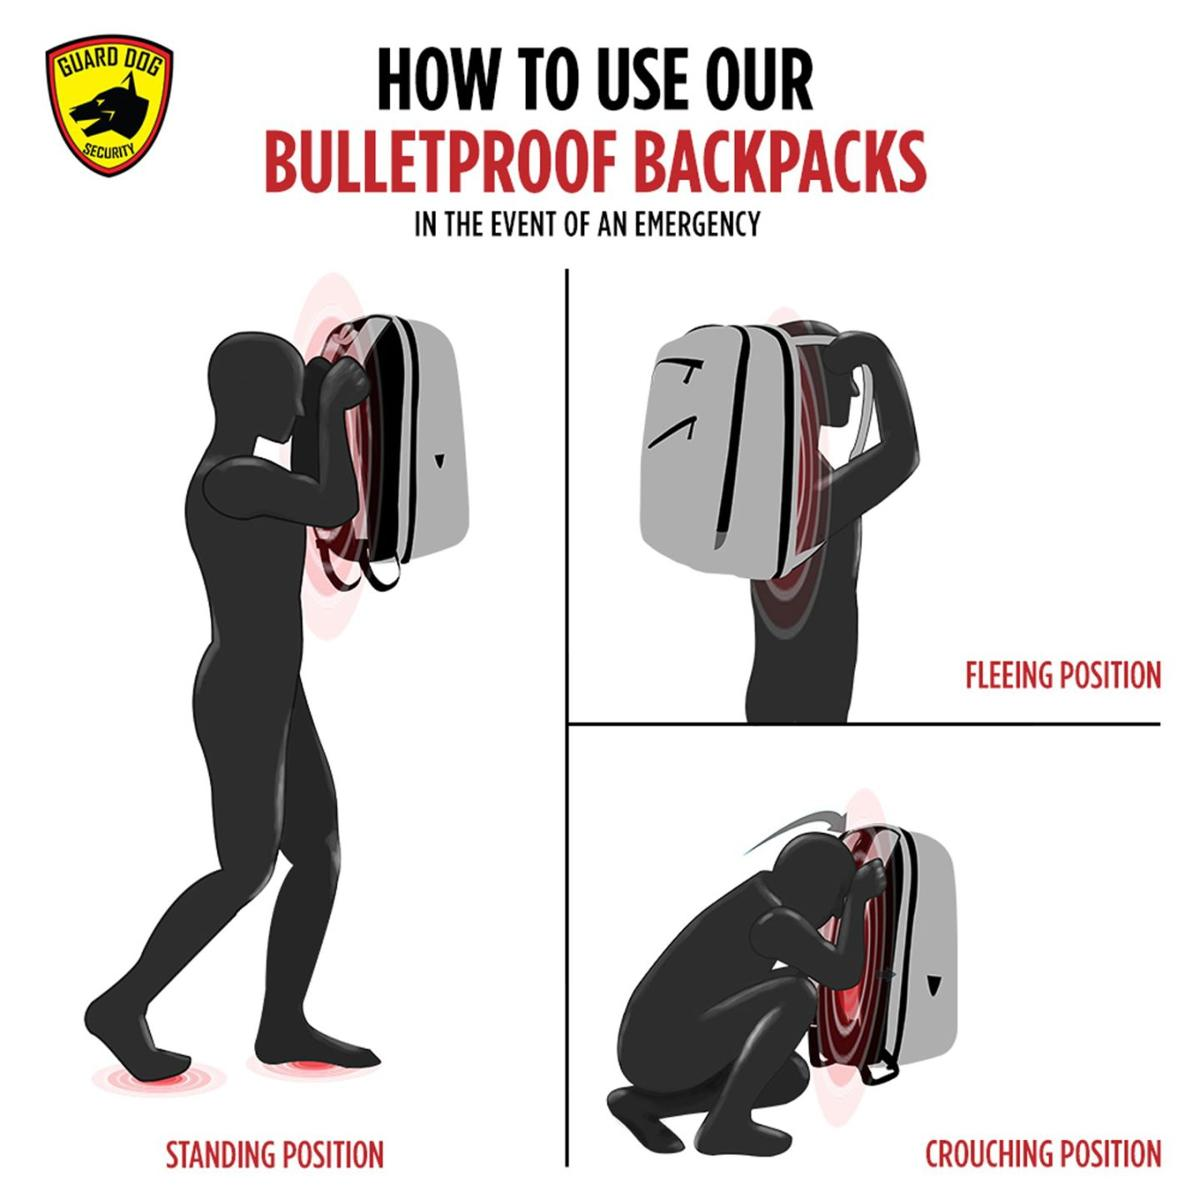 Bulletproof backpack how to use graphic